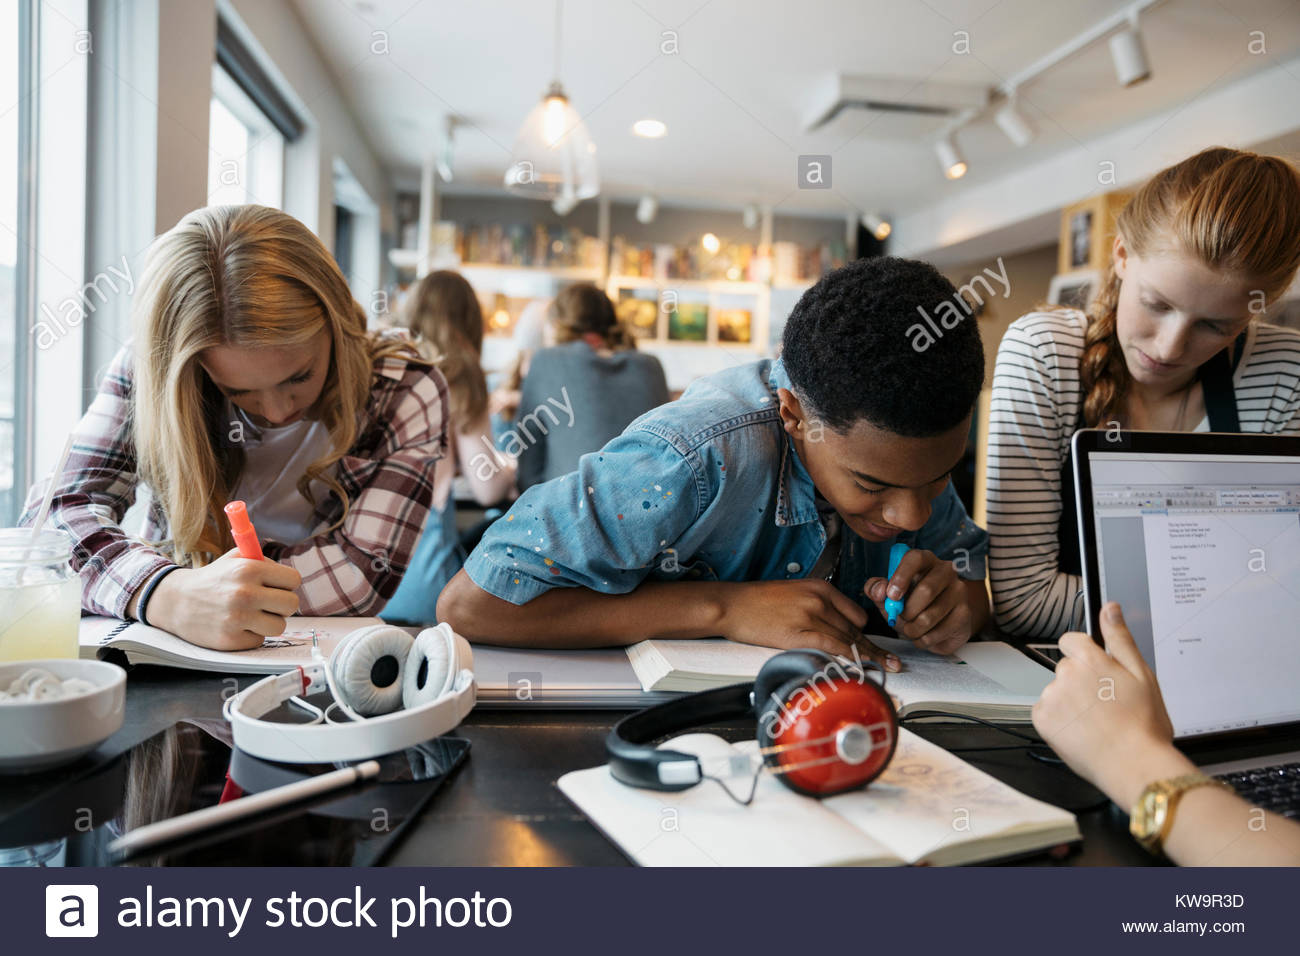 Les élèves du secondaire étudiant au cafe table Photo Stock